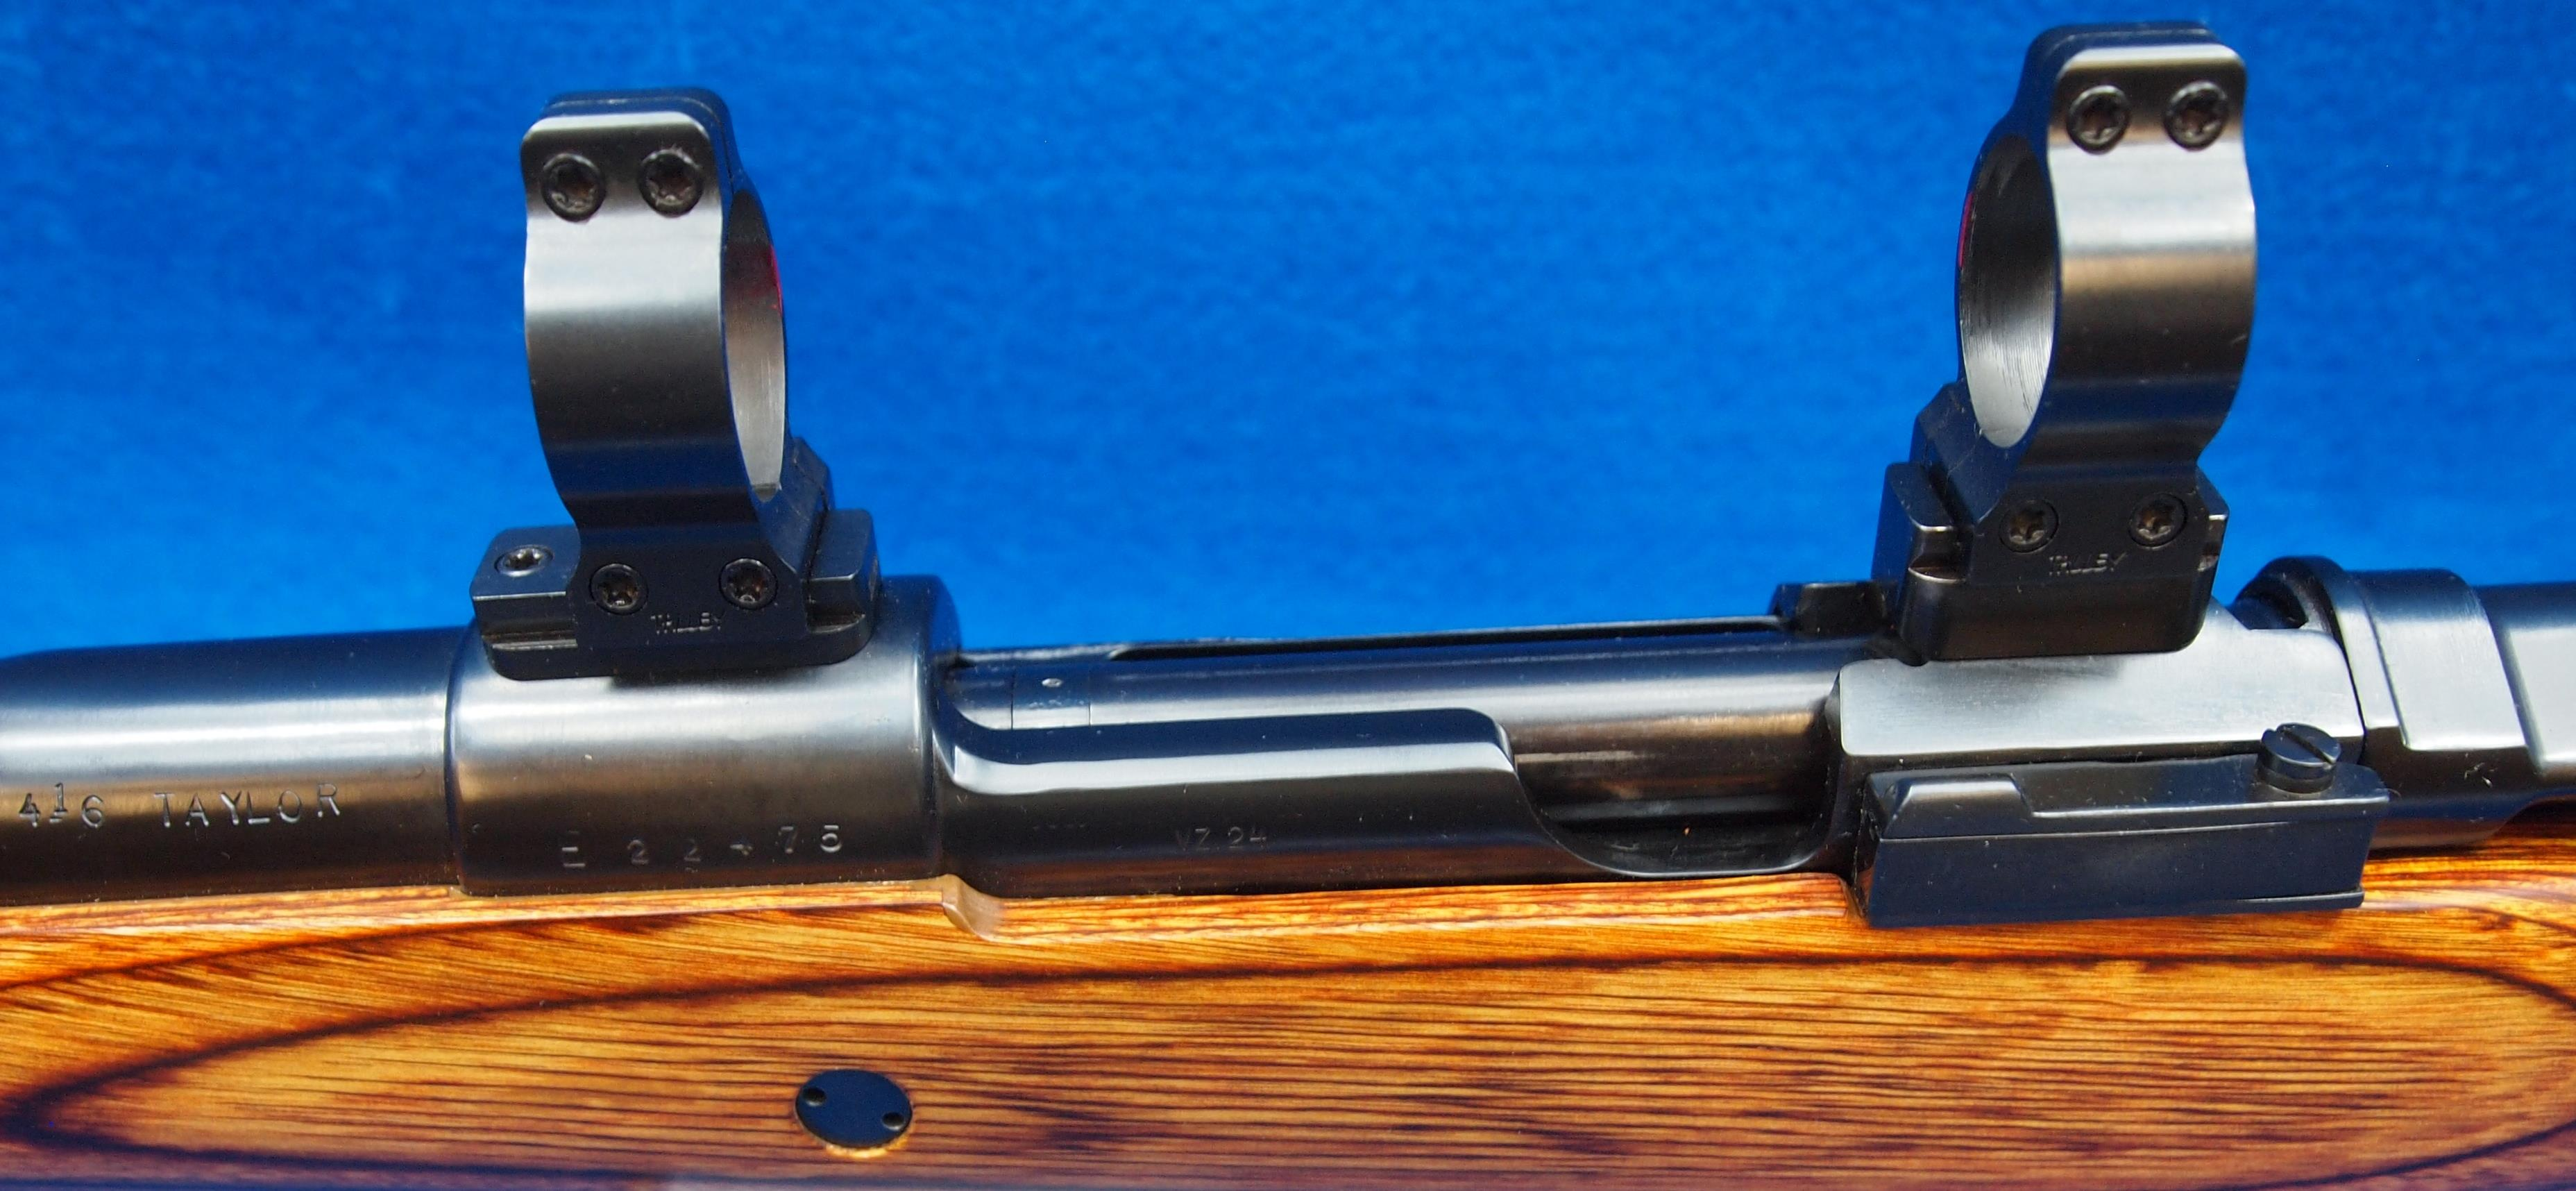 416 Taylor Mauser VZ24 Talley rifle-scope mounts